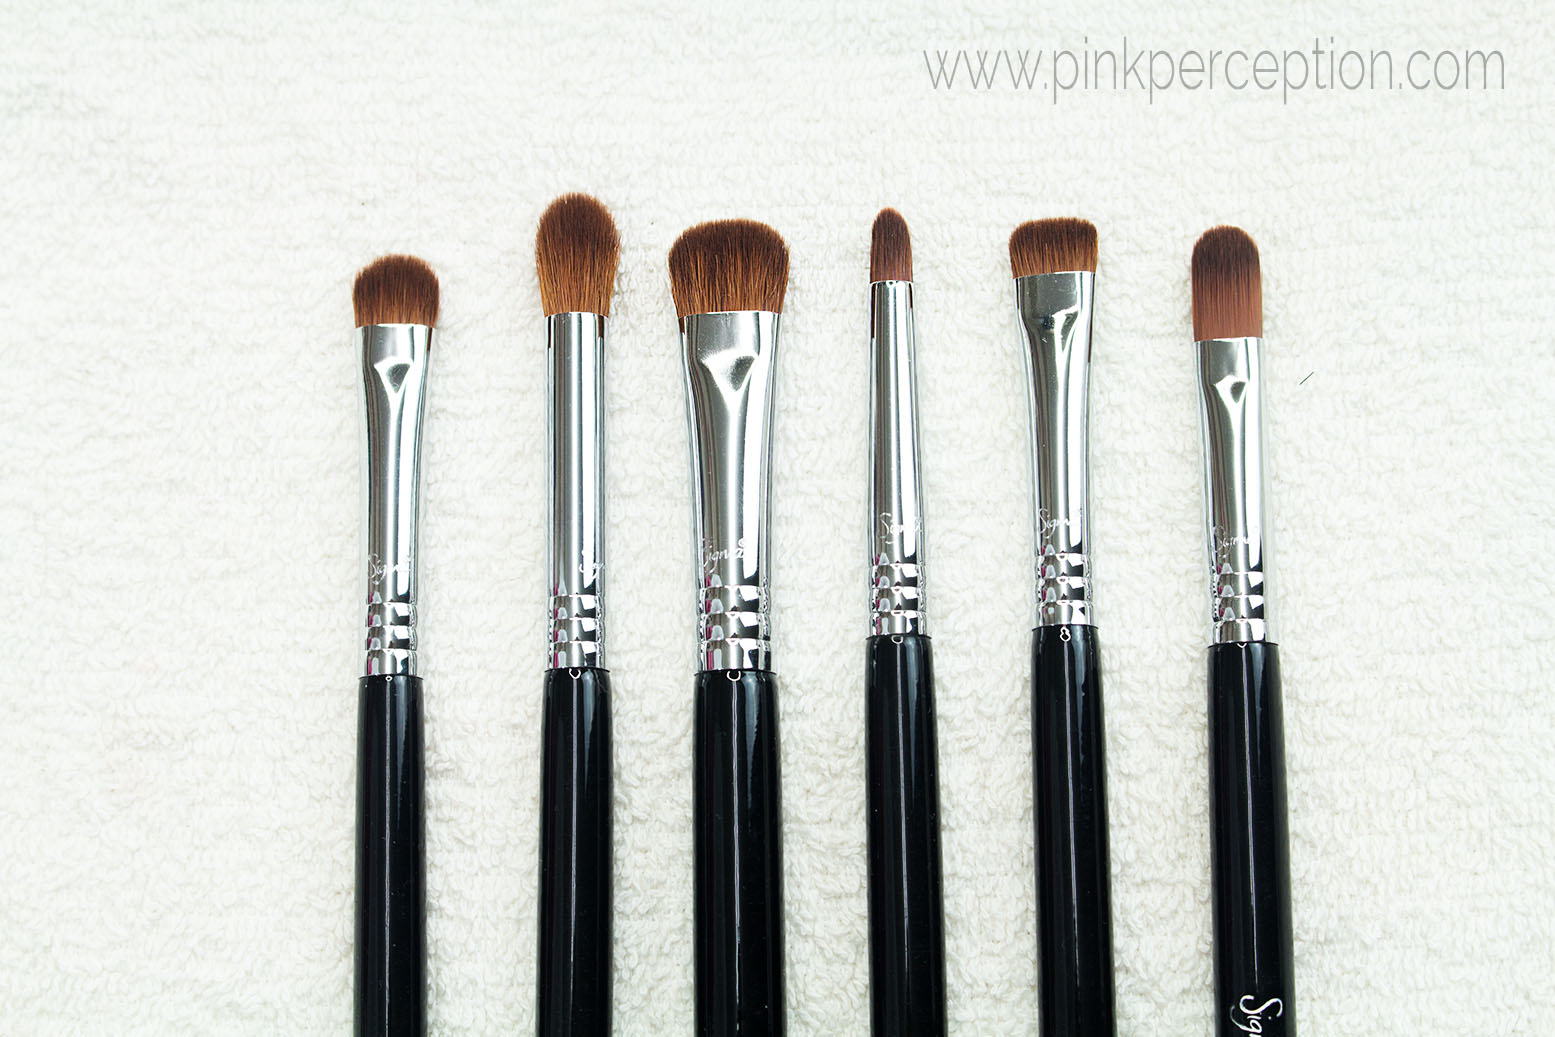 SIGMA ADVANCED ARTISTRY BRUSH SET